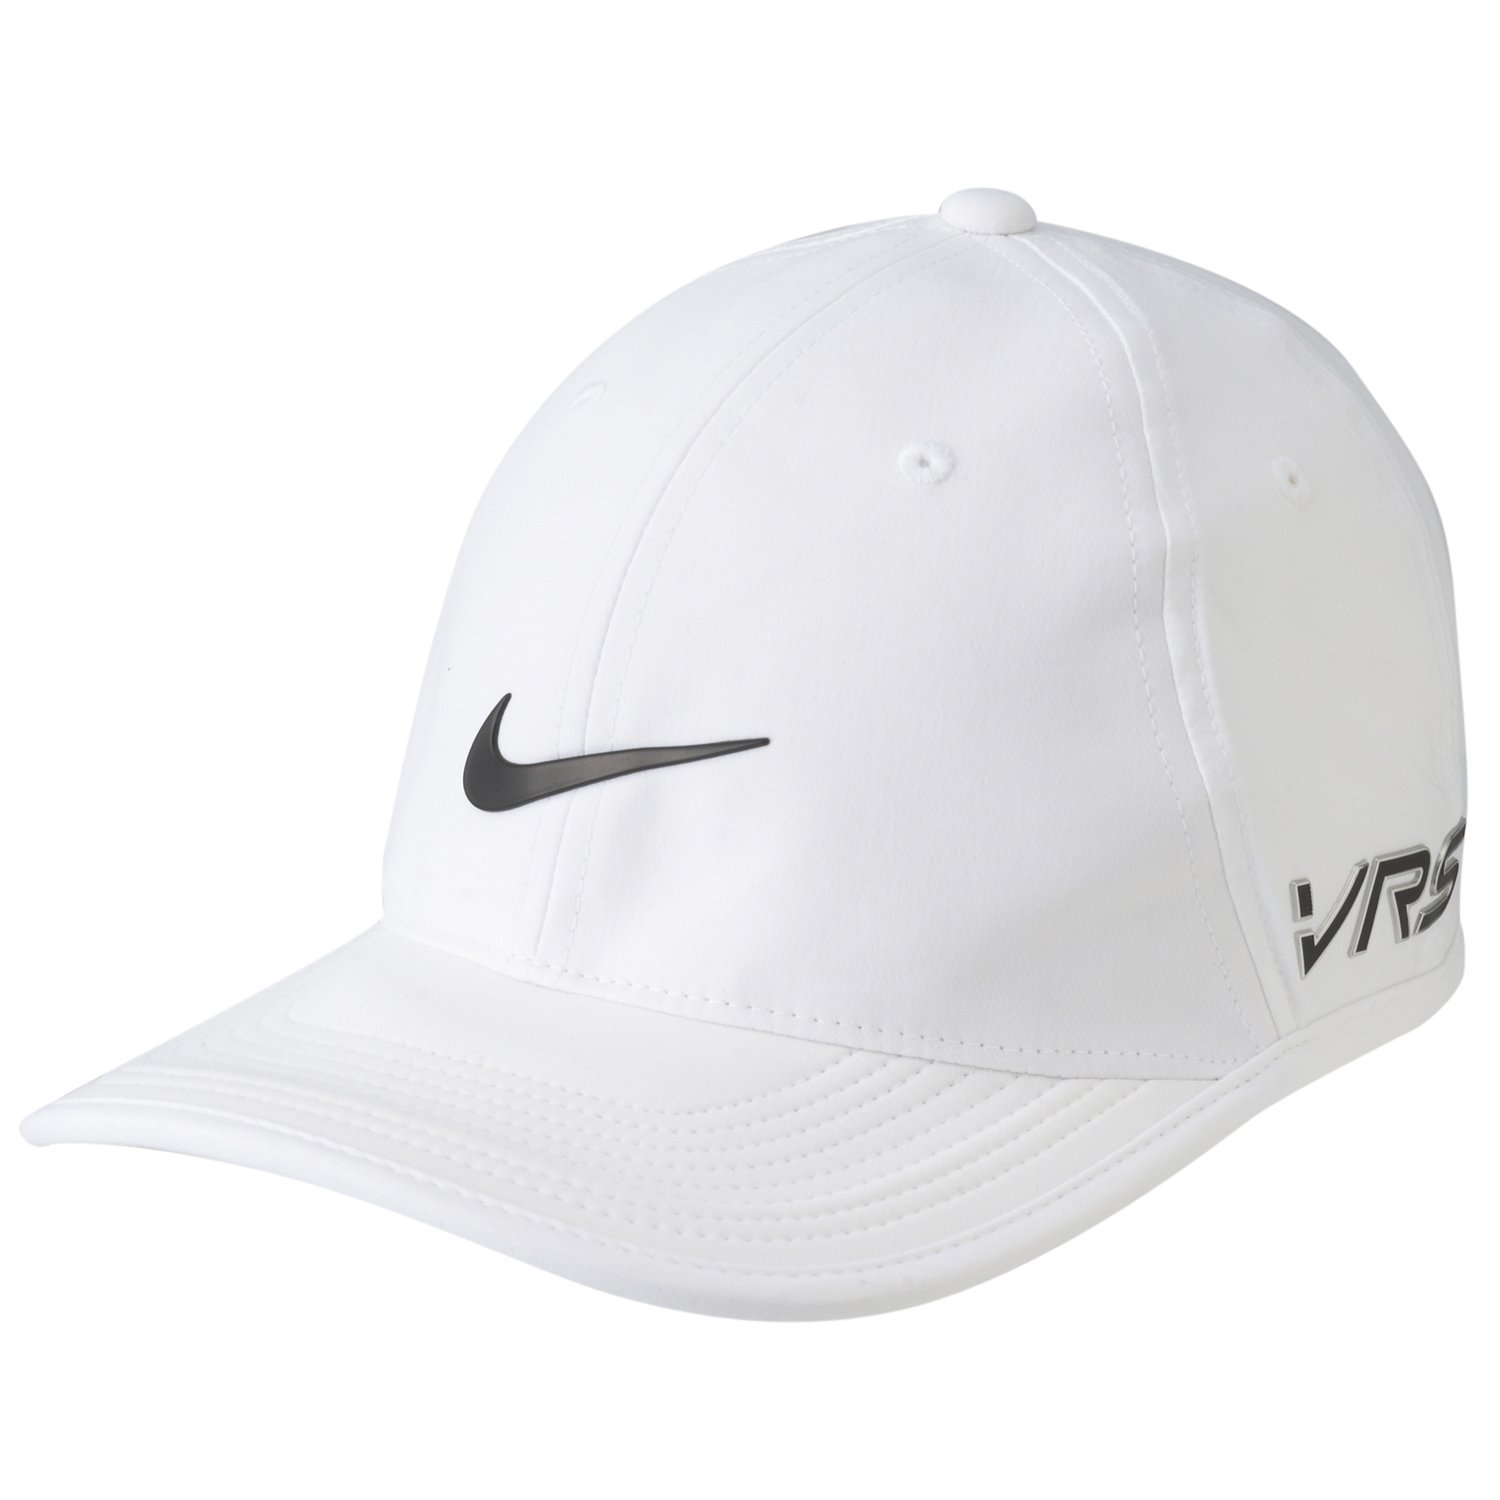 48048e2f Get Quotations · 2014 Nike Ultralight Tour Legacy Hat Mens Golf Cap -New  VRS RZN Logo